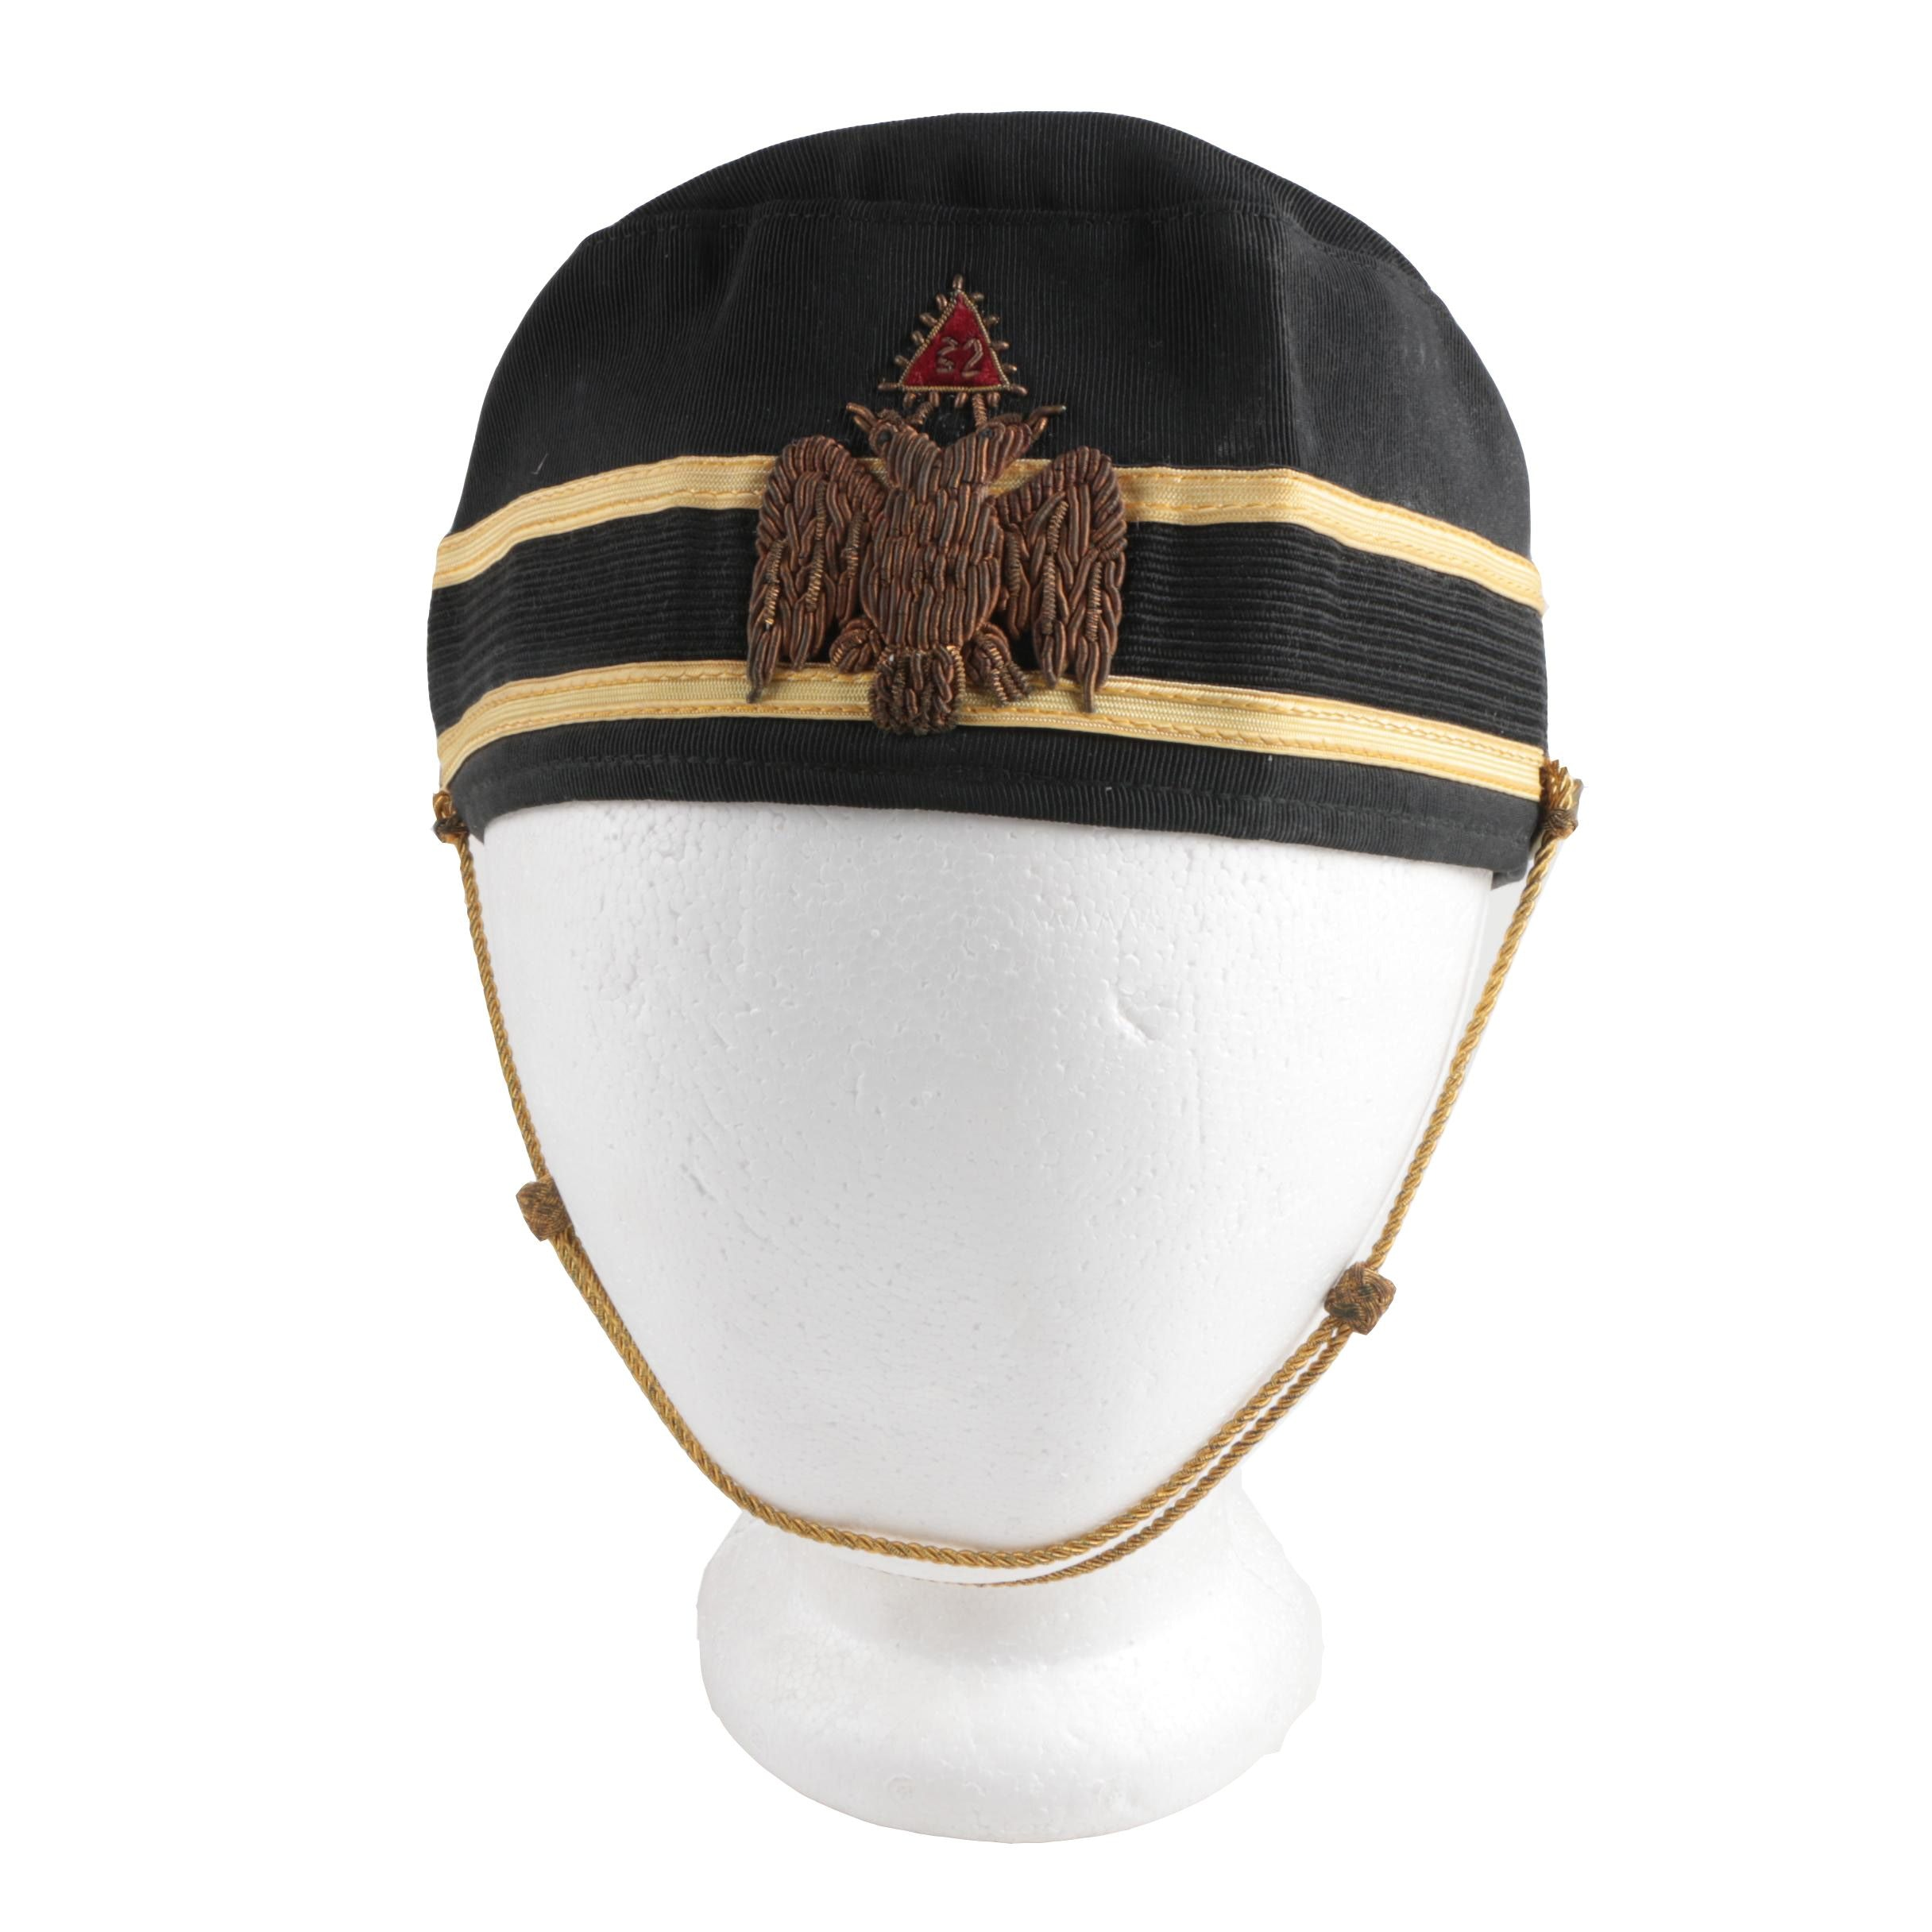 Scottish Rite 32nd Rank Masonic Cap with Double Eagle Emblem